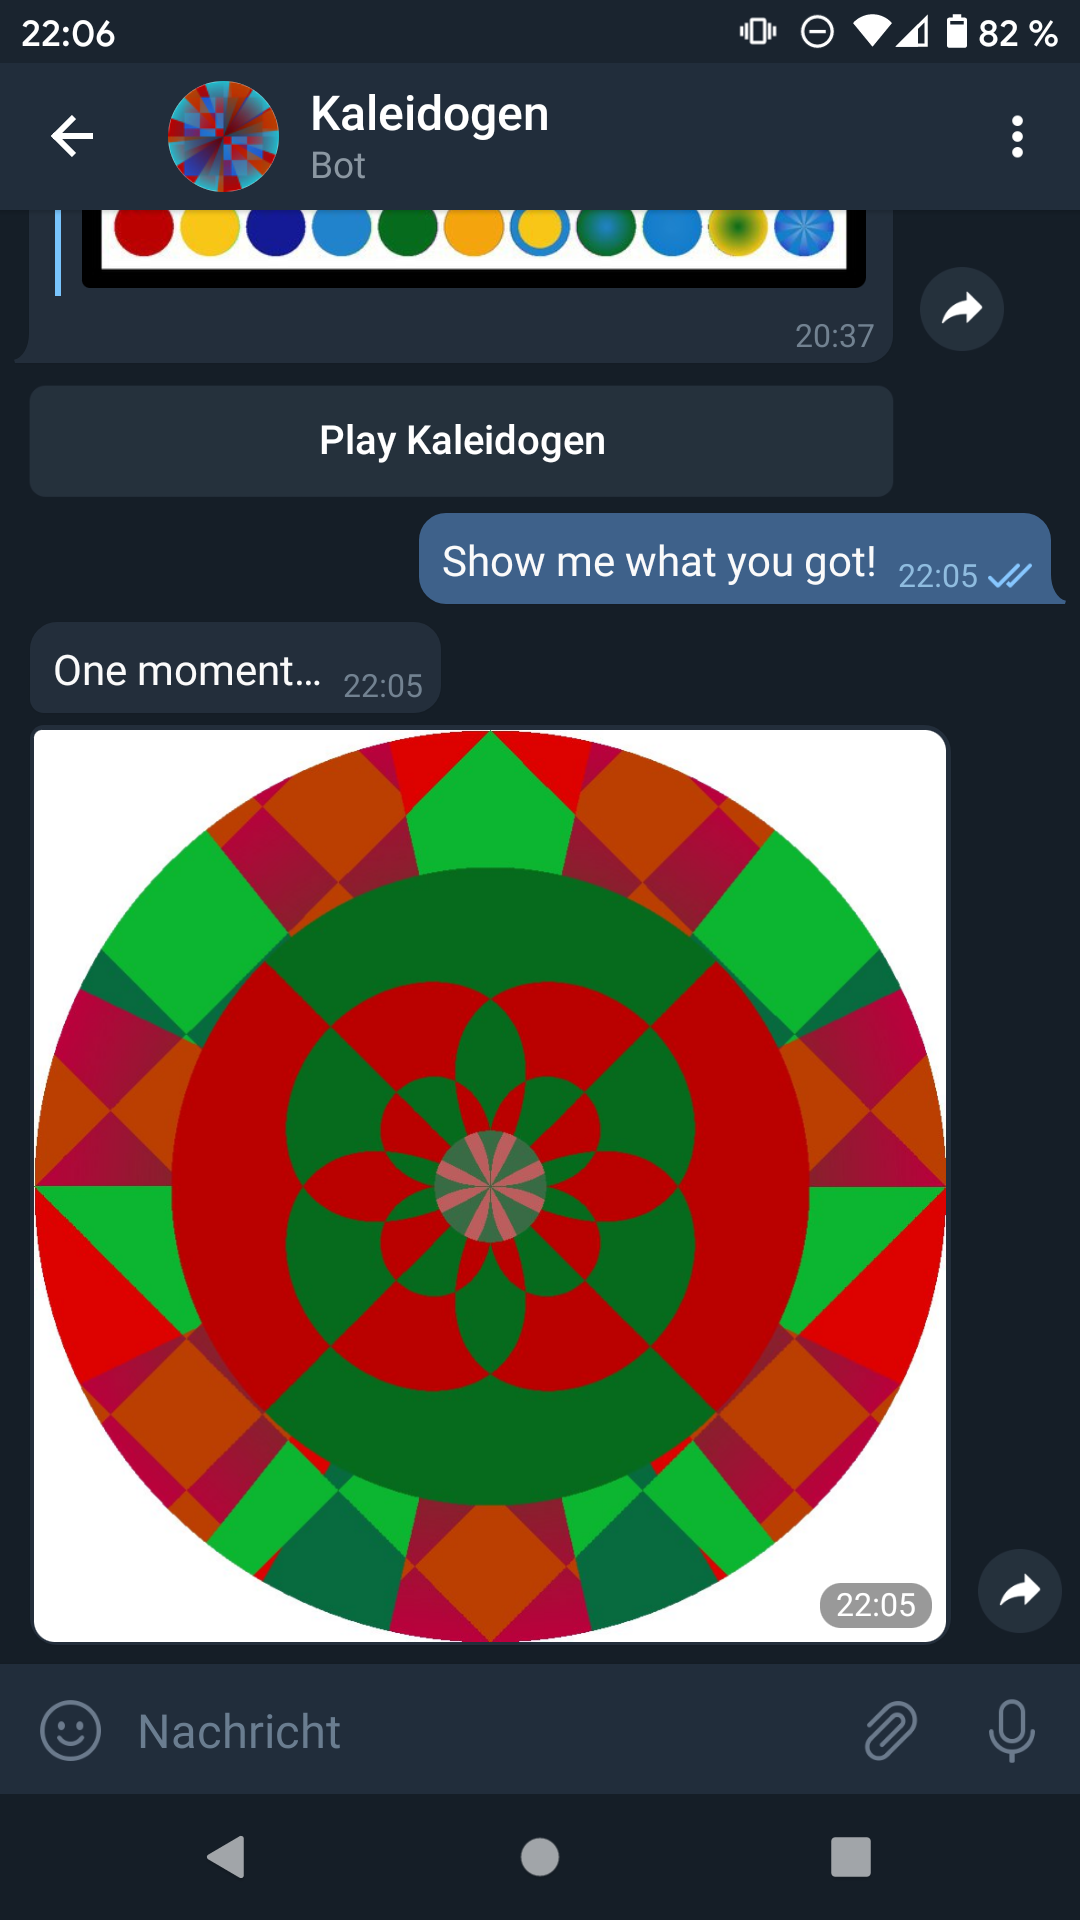 KaleidogenBot in action